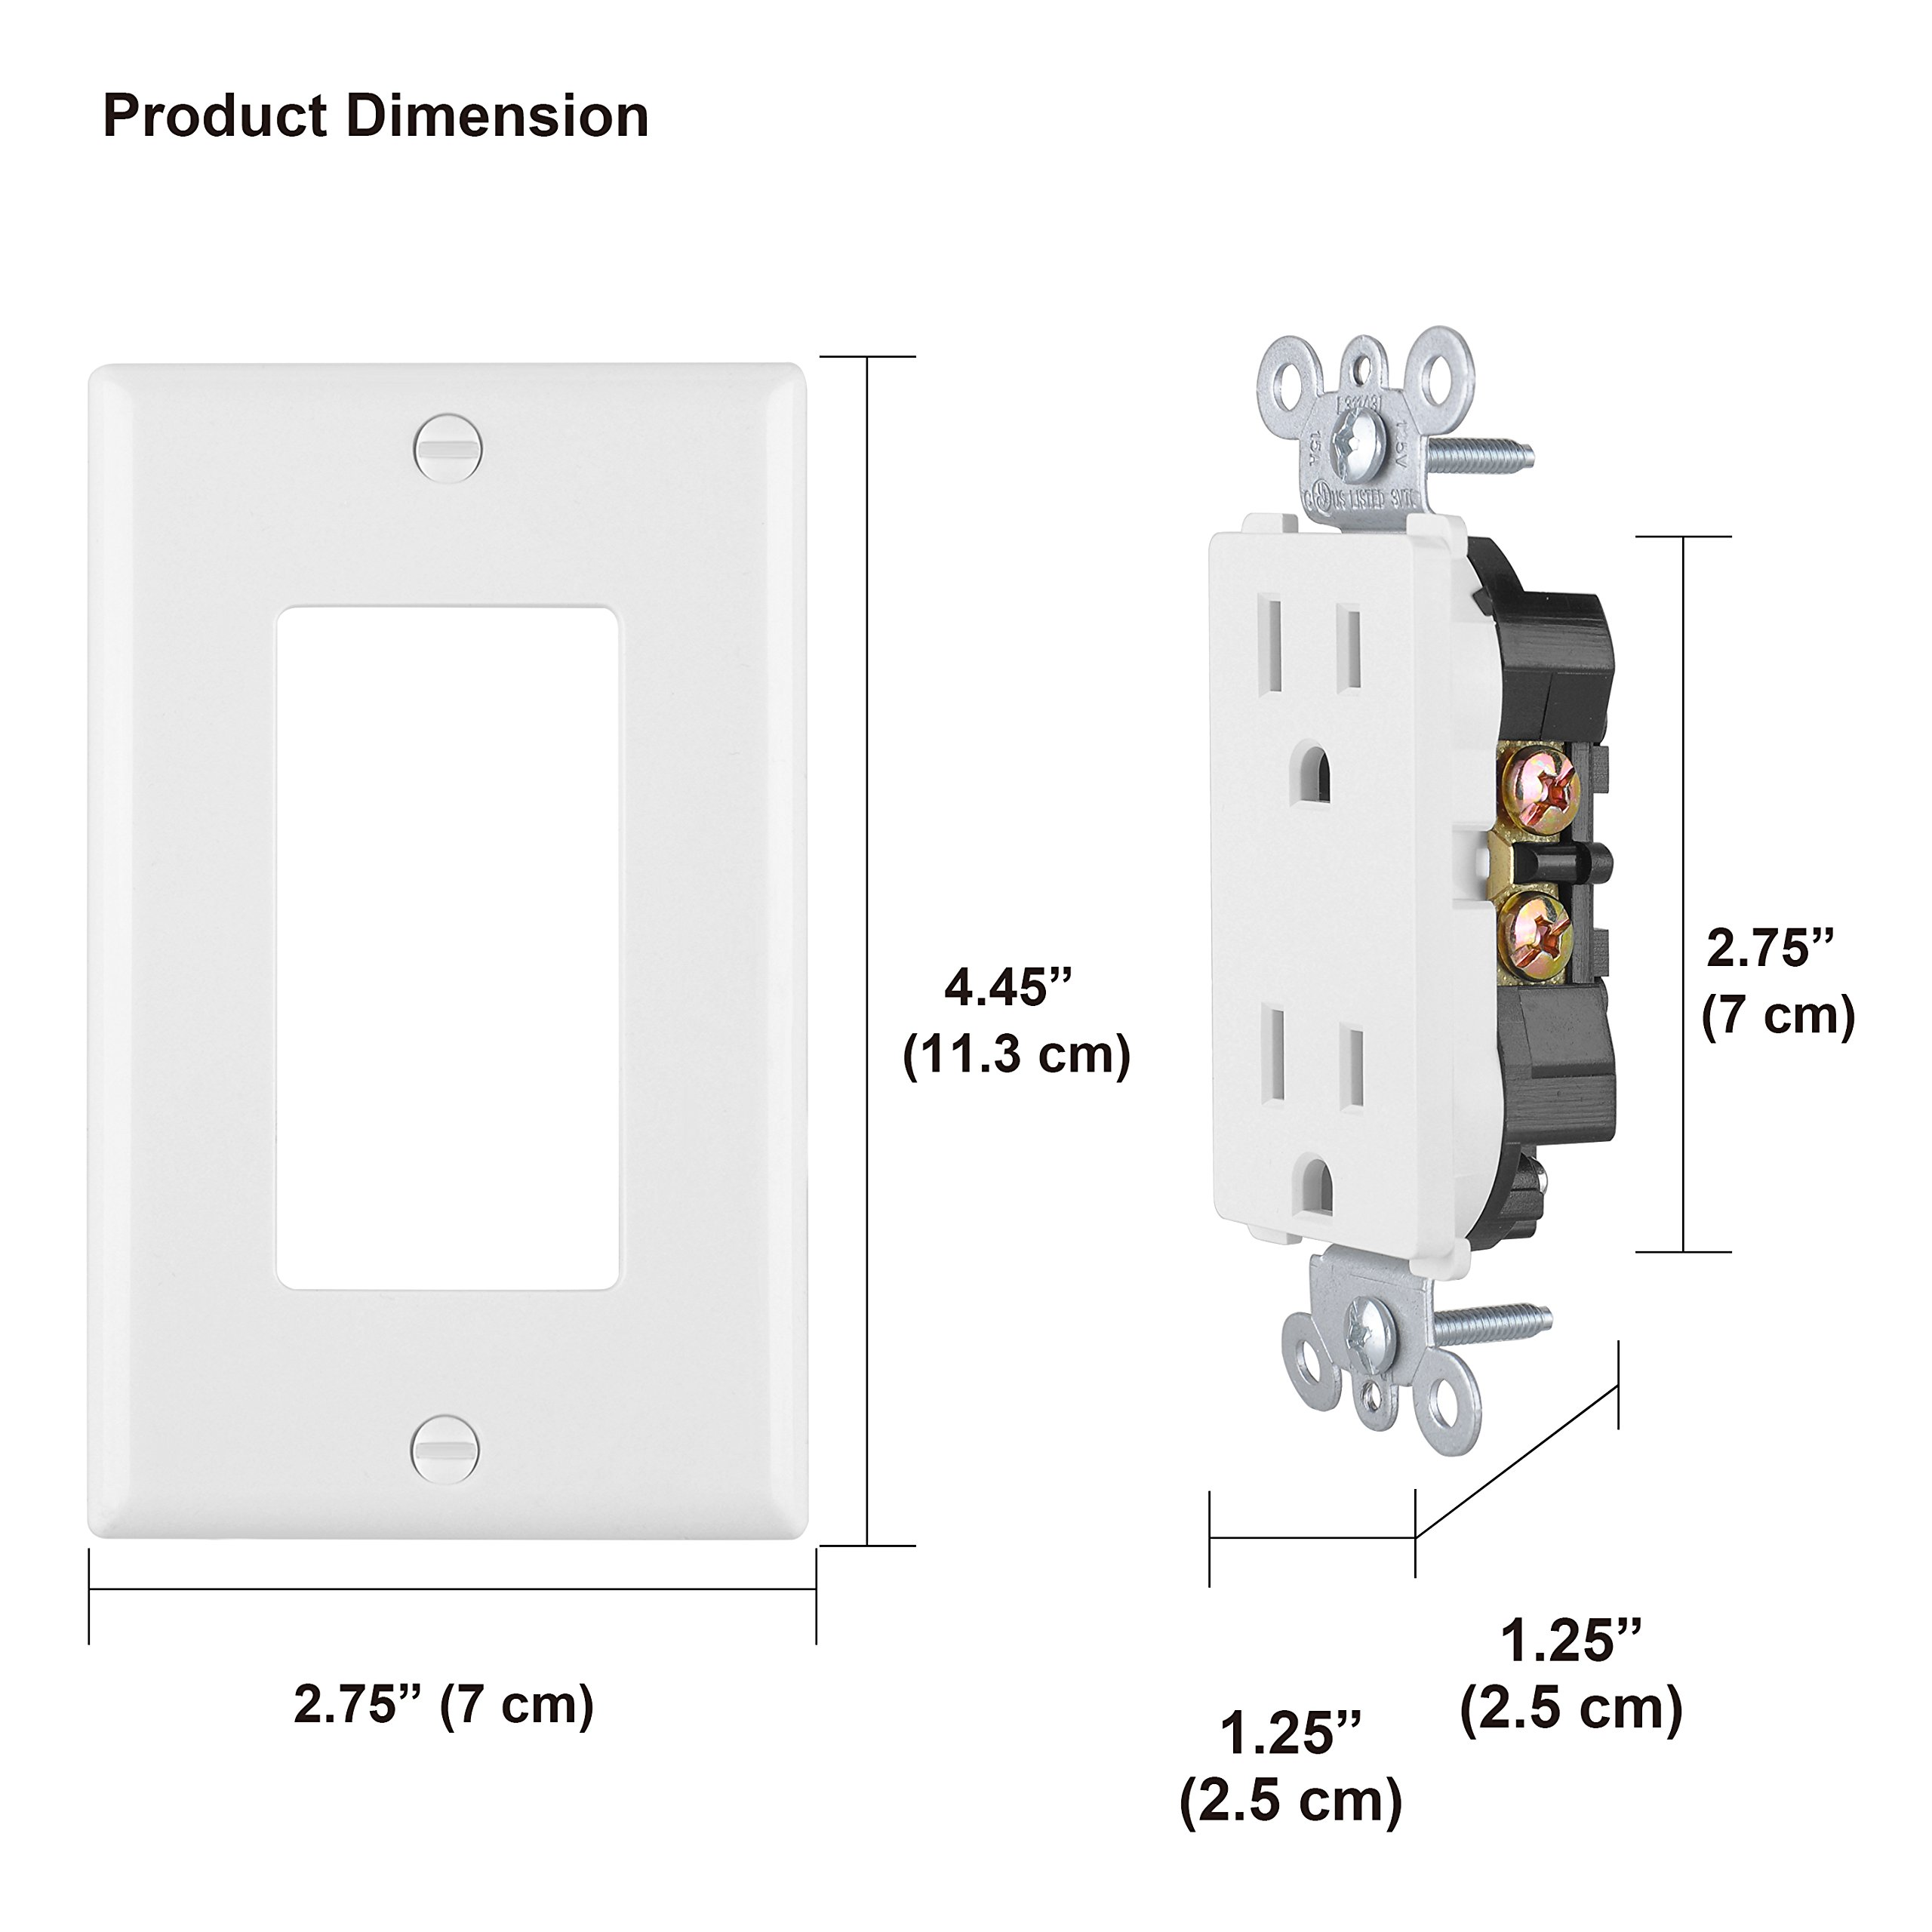 BESTTEN Wholesale, 50 Pack of 15A Standard Decor Outlets with Wall Plates, Decorative Electrical Receptacle with Covers, None-Tamper-Resistant, Residential and Commercial Grade, UL Listed, White by BESTTEN (Image #3)